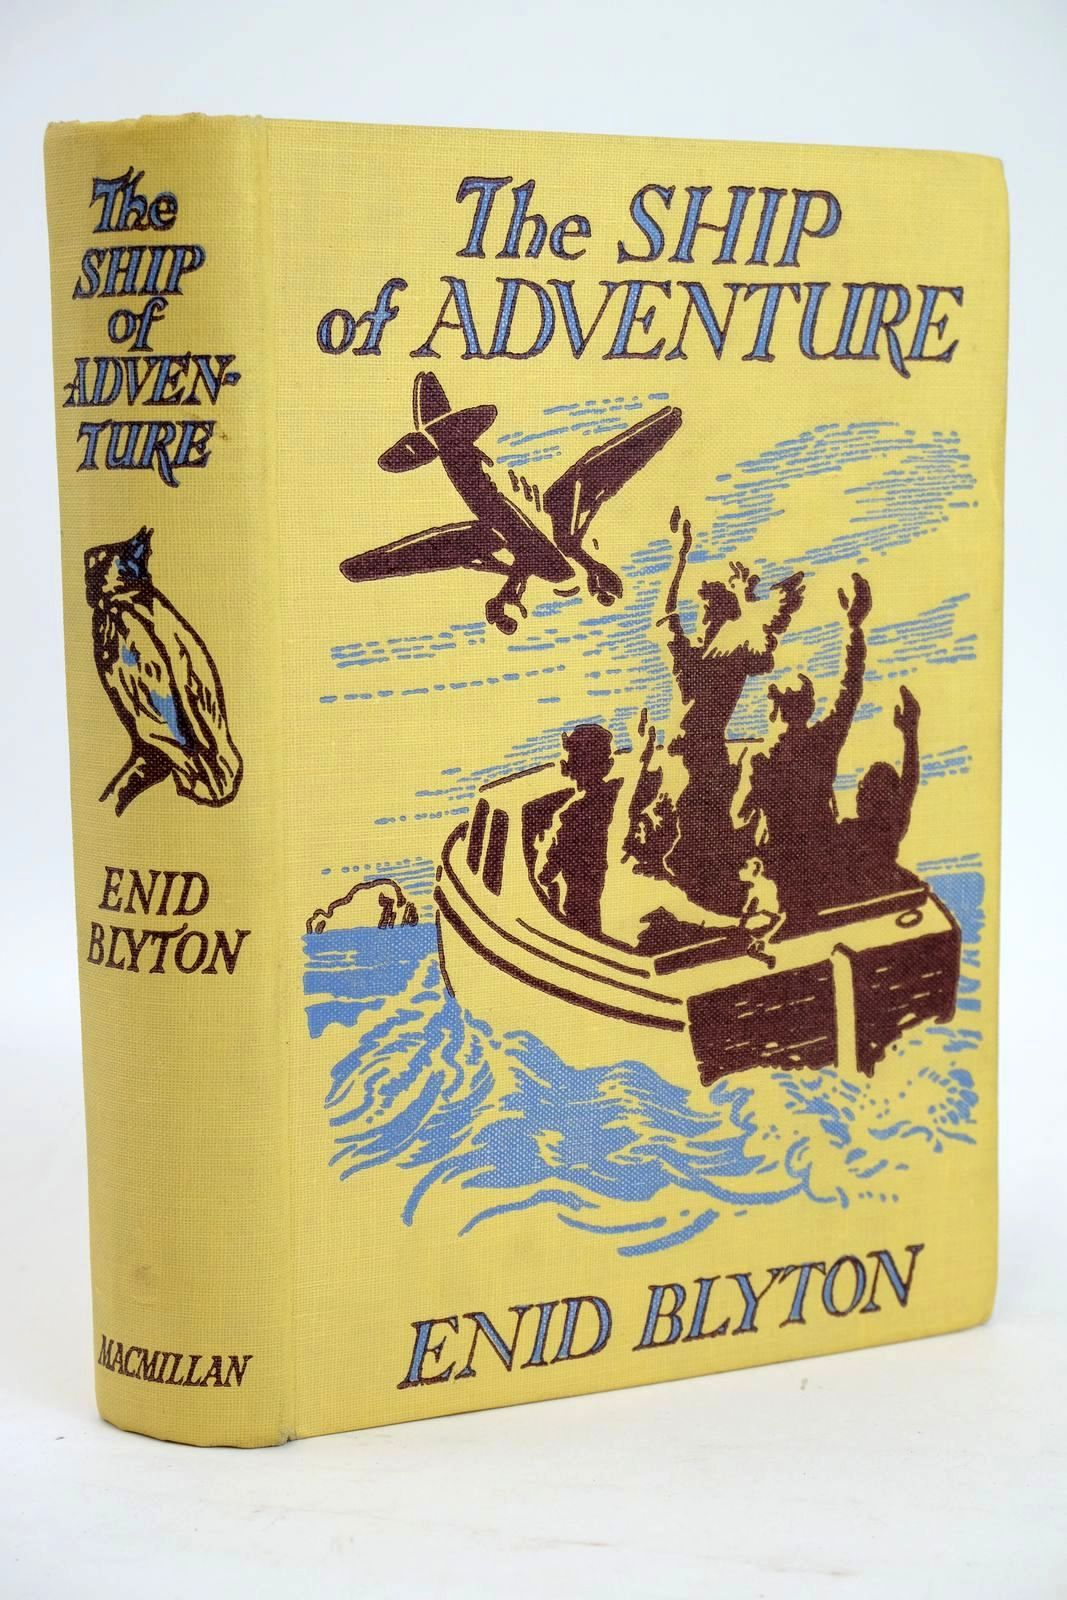 Photo of THE SHIP OF ADVENTURE written by Blyton, Enid illustrated by Tresilian, Stuart published by Macmillan & Co. Ltd. (STOCK CODE: 1319434)  for sale by Stella & Rose's Books